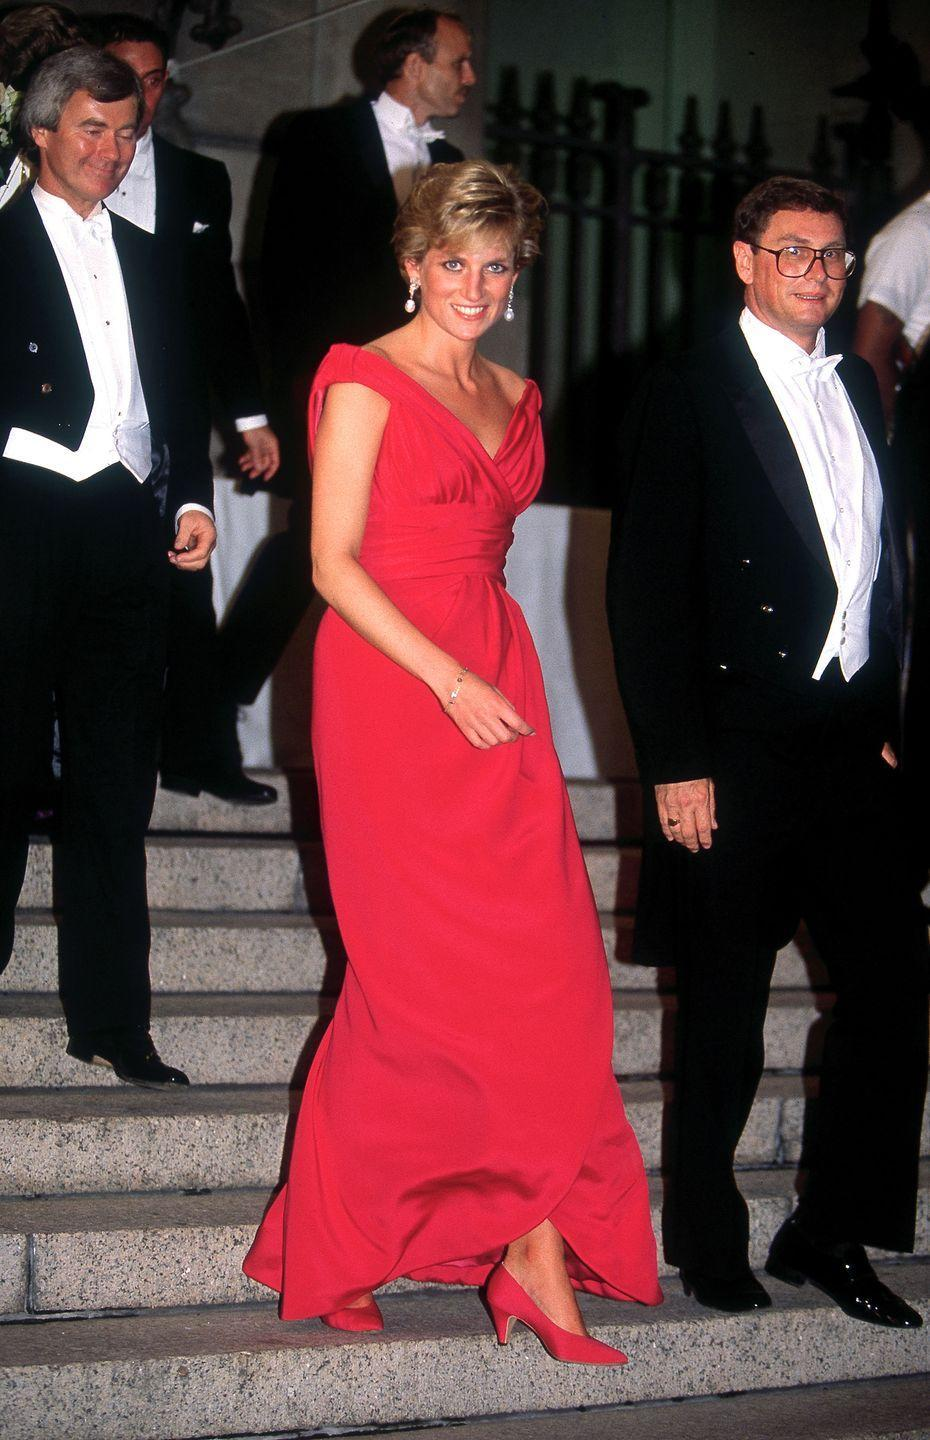 <p>In a red dress by Victor Edelstein at a dinner in Washington, D.C. </p>